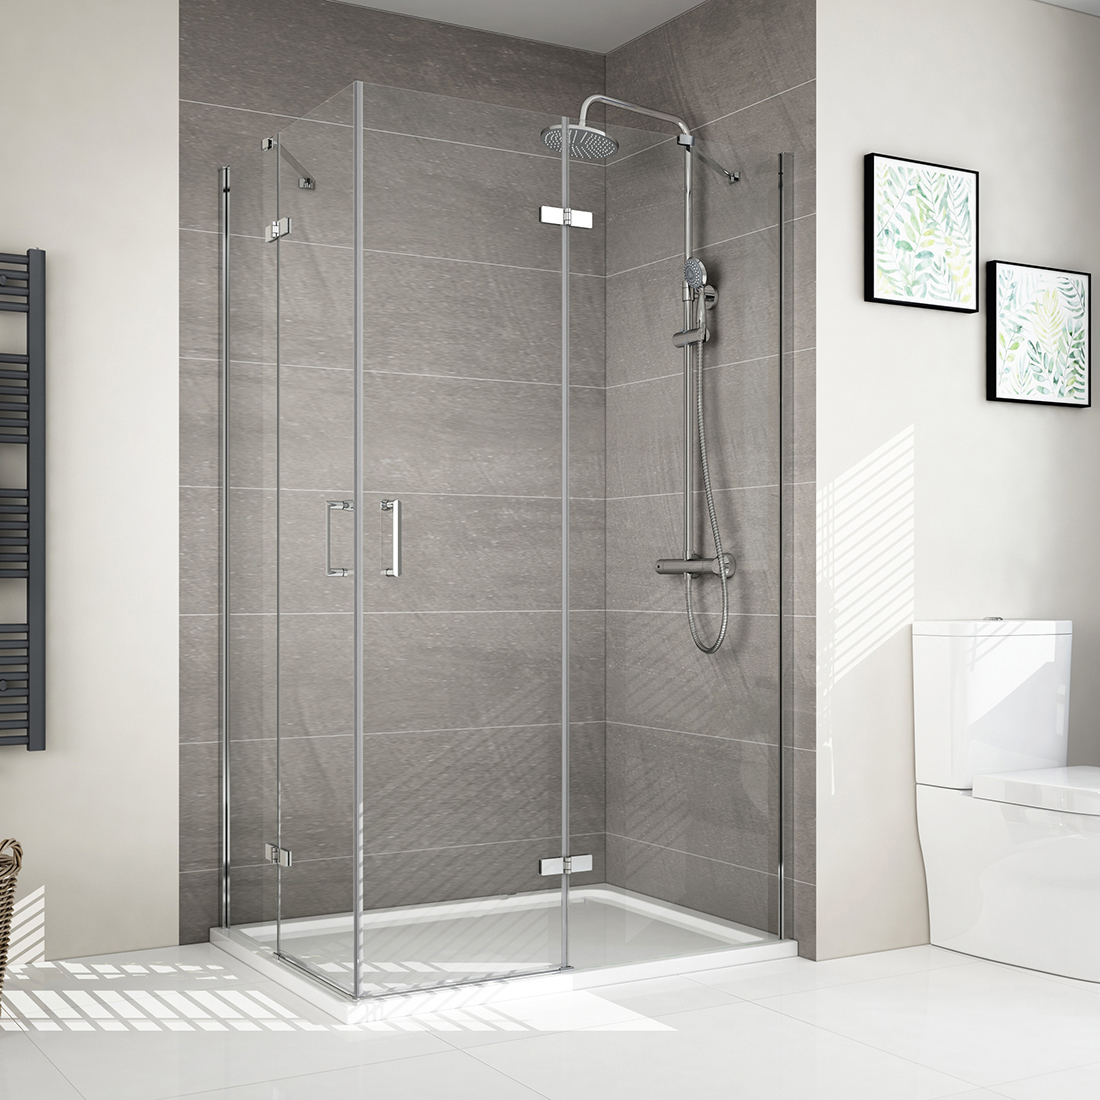 Details About Frameless Pivot Hinge Shower Enclosure Glass Cubicle Door Side Panel Stone Tray